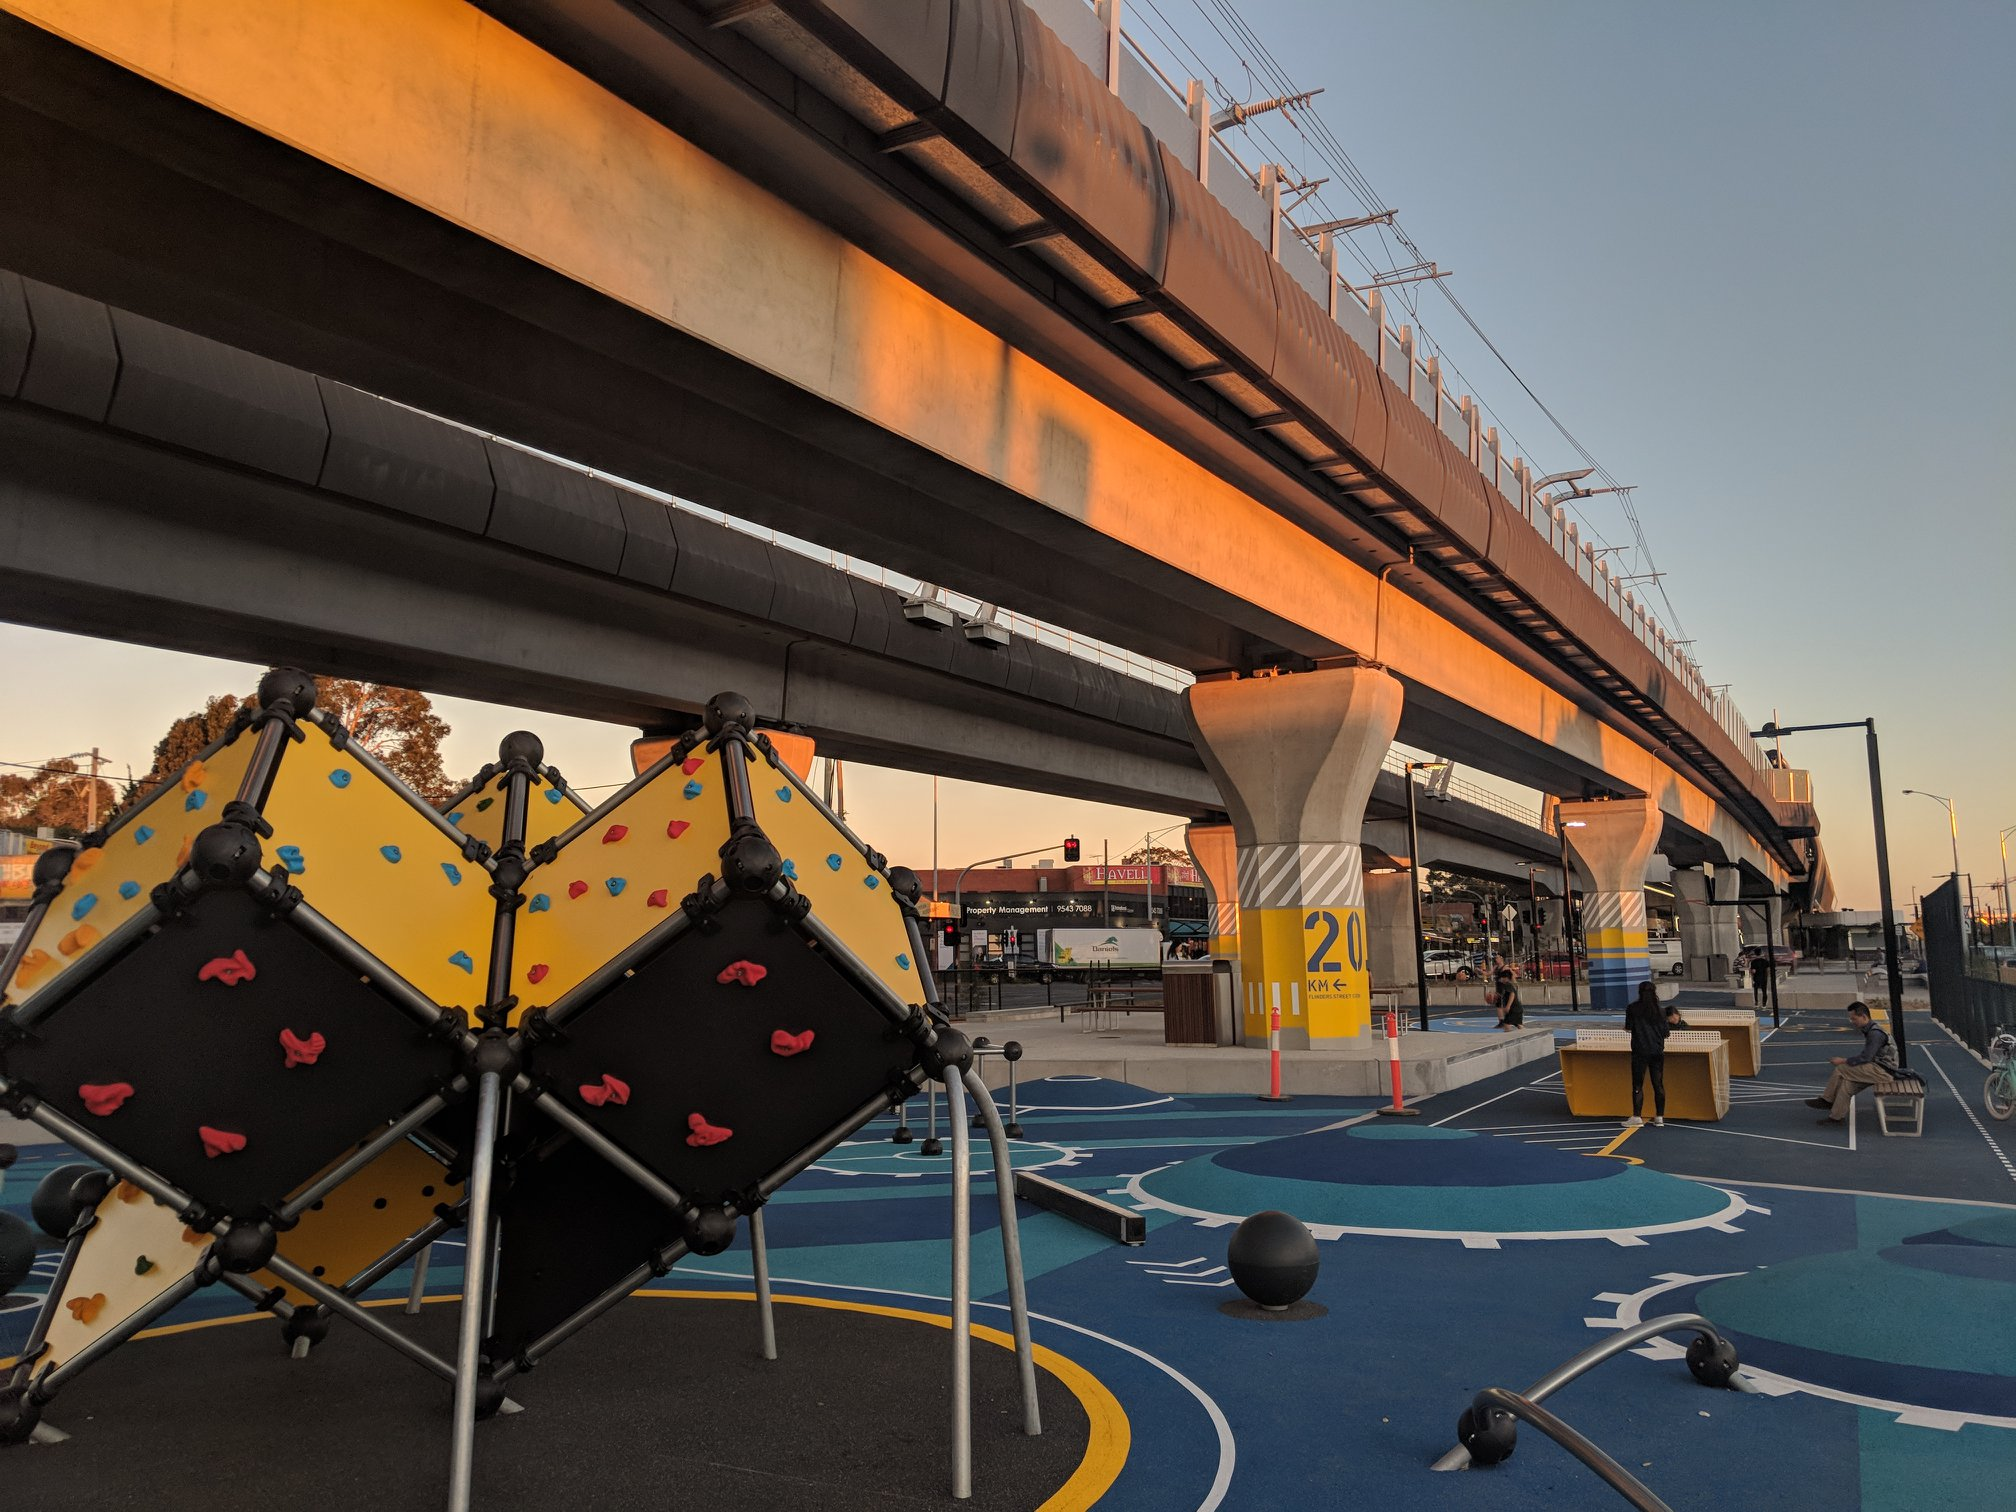 Under a railway line in Melbourne a game of table tennis is being played on two yellow steel ping pong tables, next to a rock climbing wall and fitness equipment.